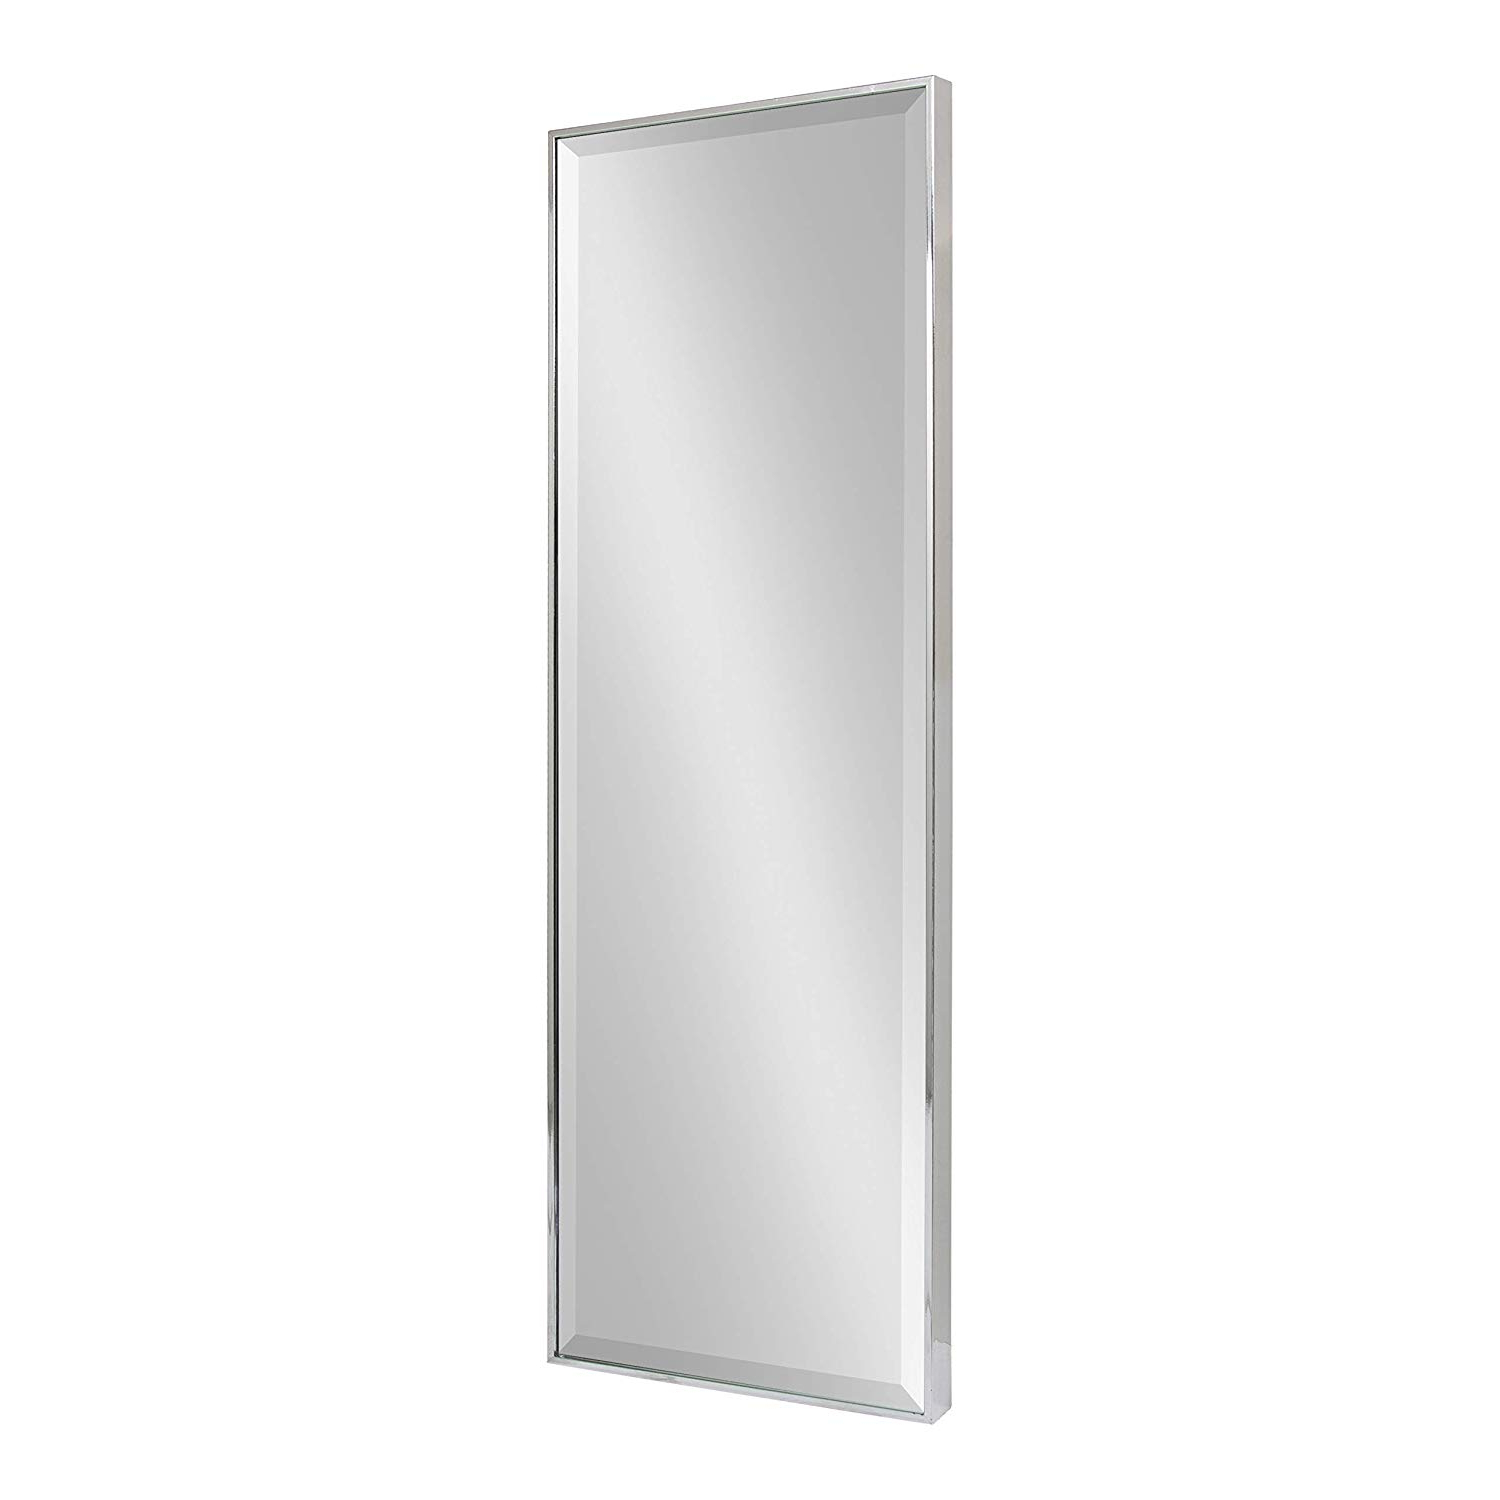 Fashionable Kate And Laurel Rhodes Decorative Frame Full Length Wall Mirror, 16.75x48. (View 12 of 20)